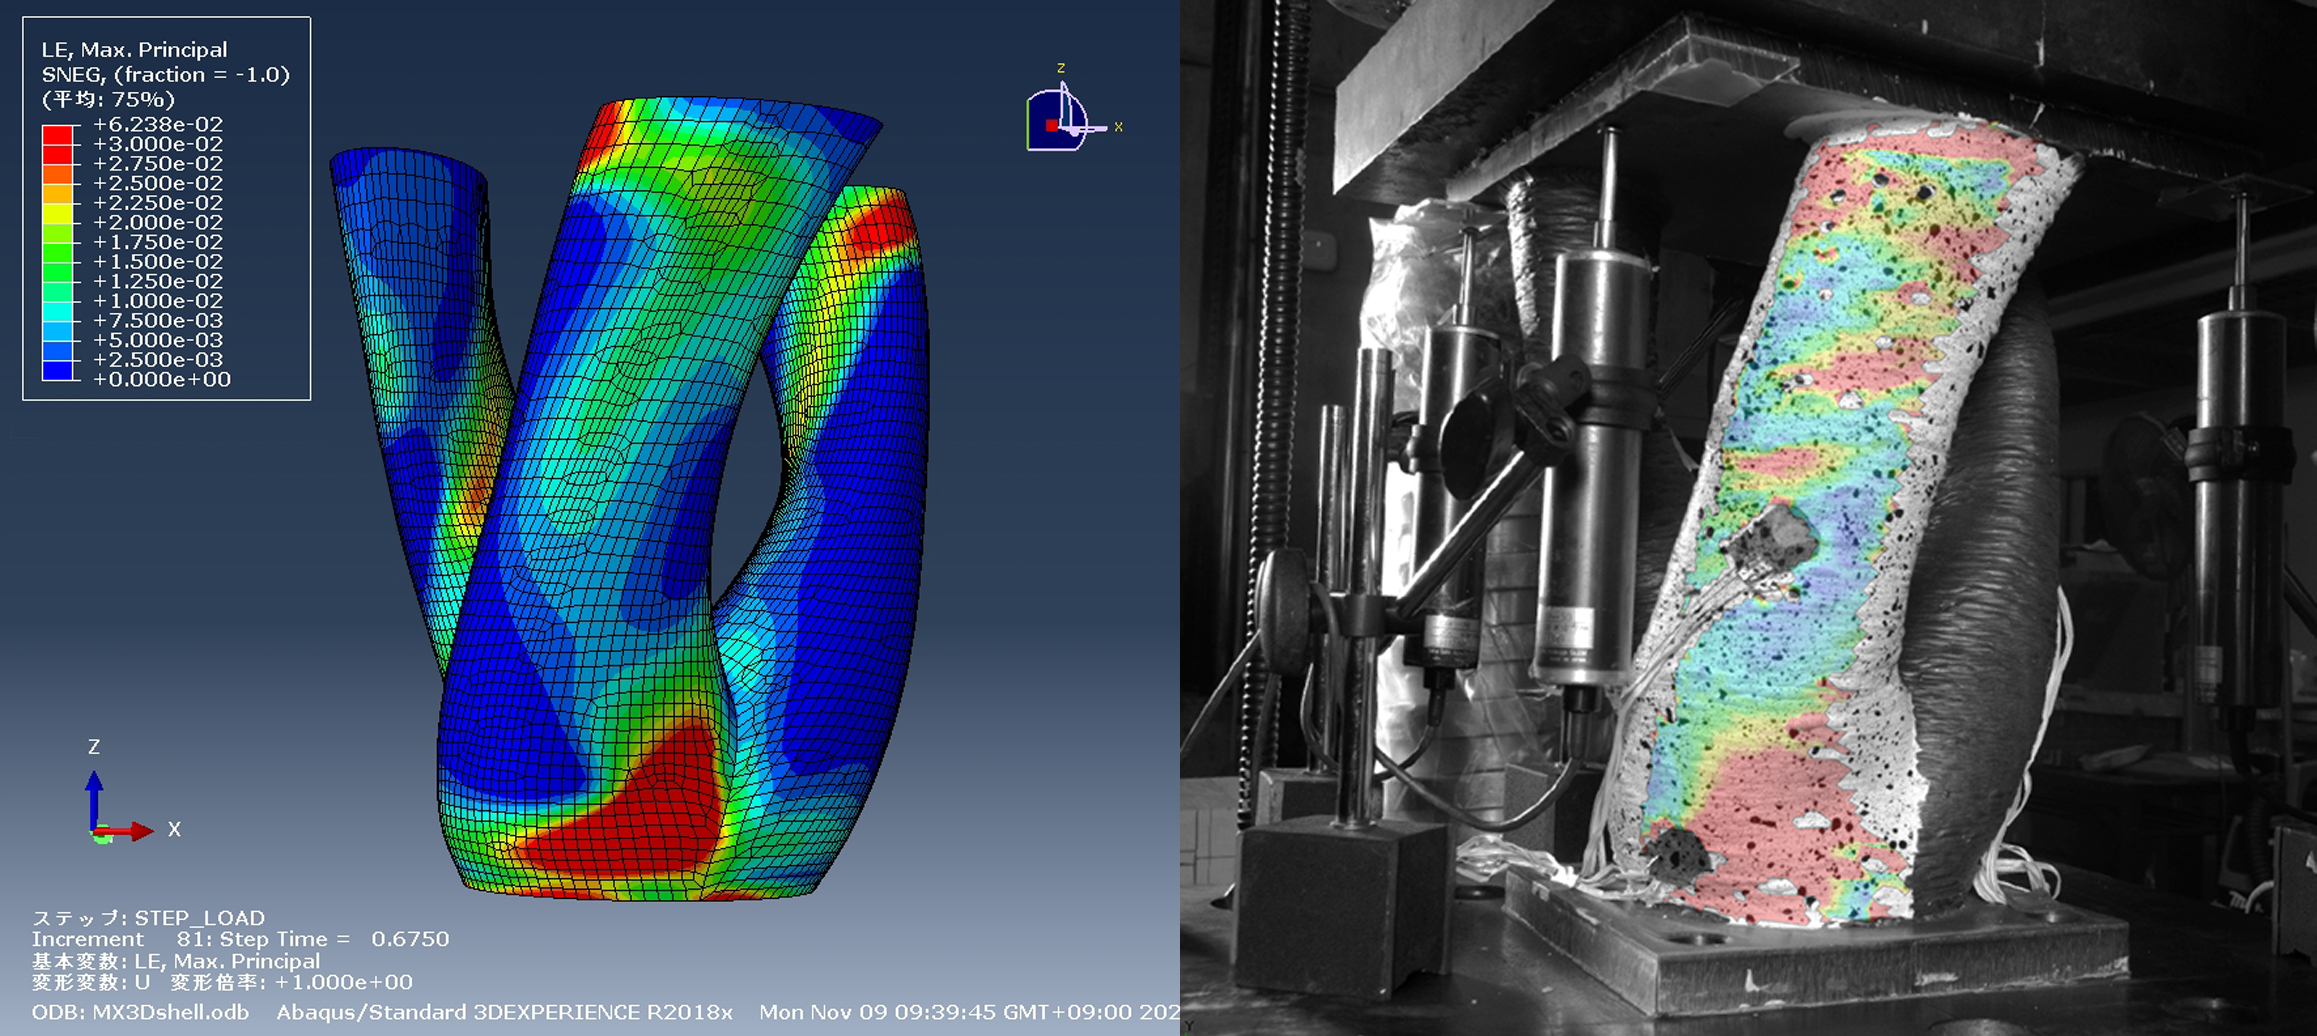 Analysis of the 3D printed structural steel connectors. Image via MX3D.